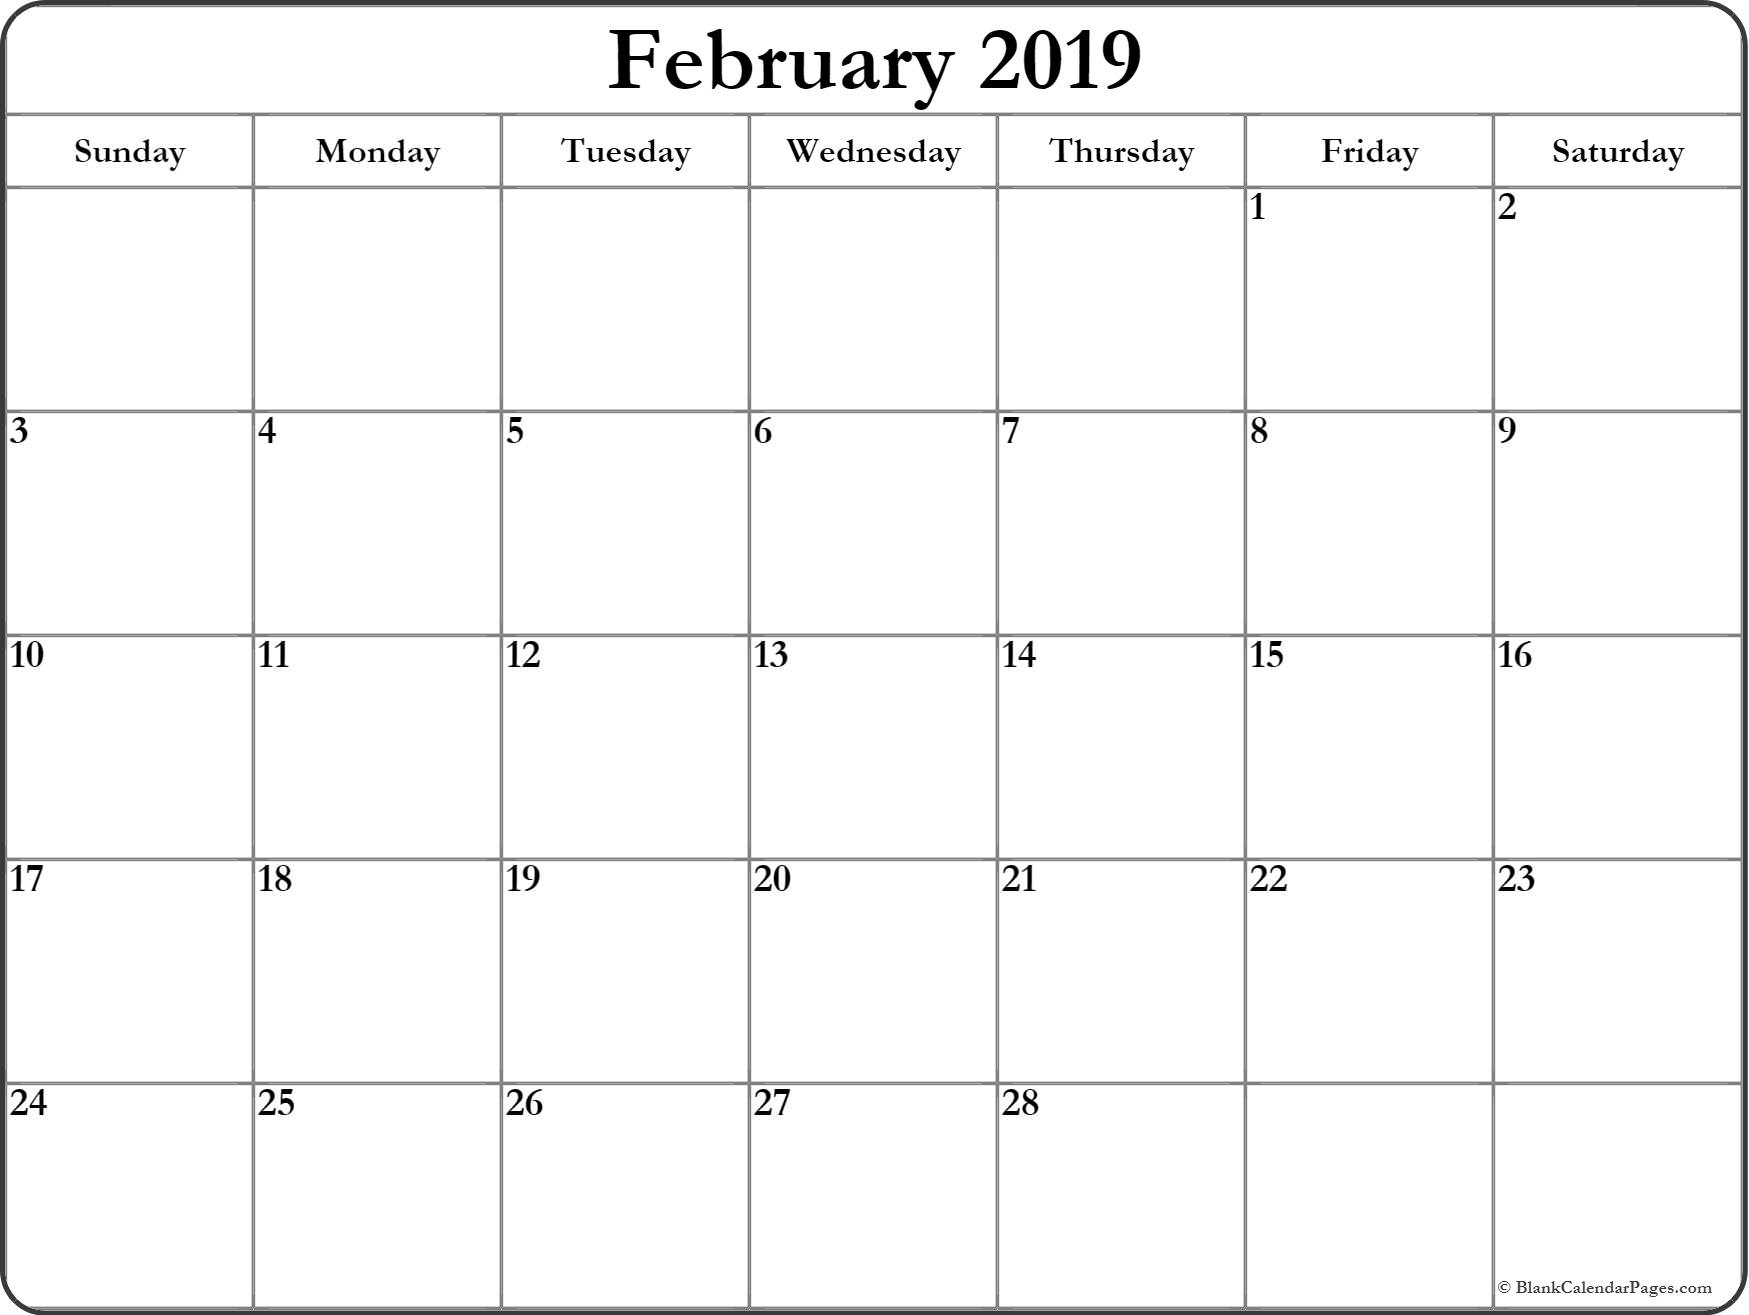 Blank February 2019 Calendar Template Editable In Pdf, Word, Excel within February Calendar Printable Template Blank